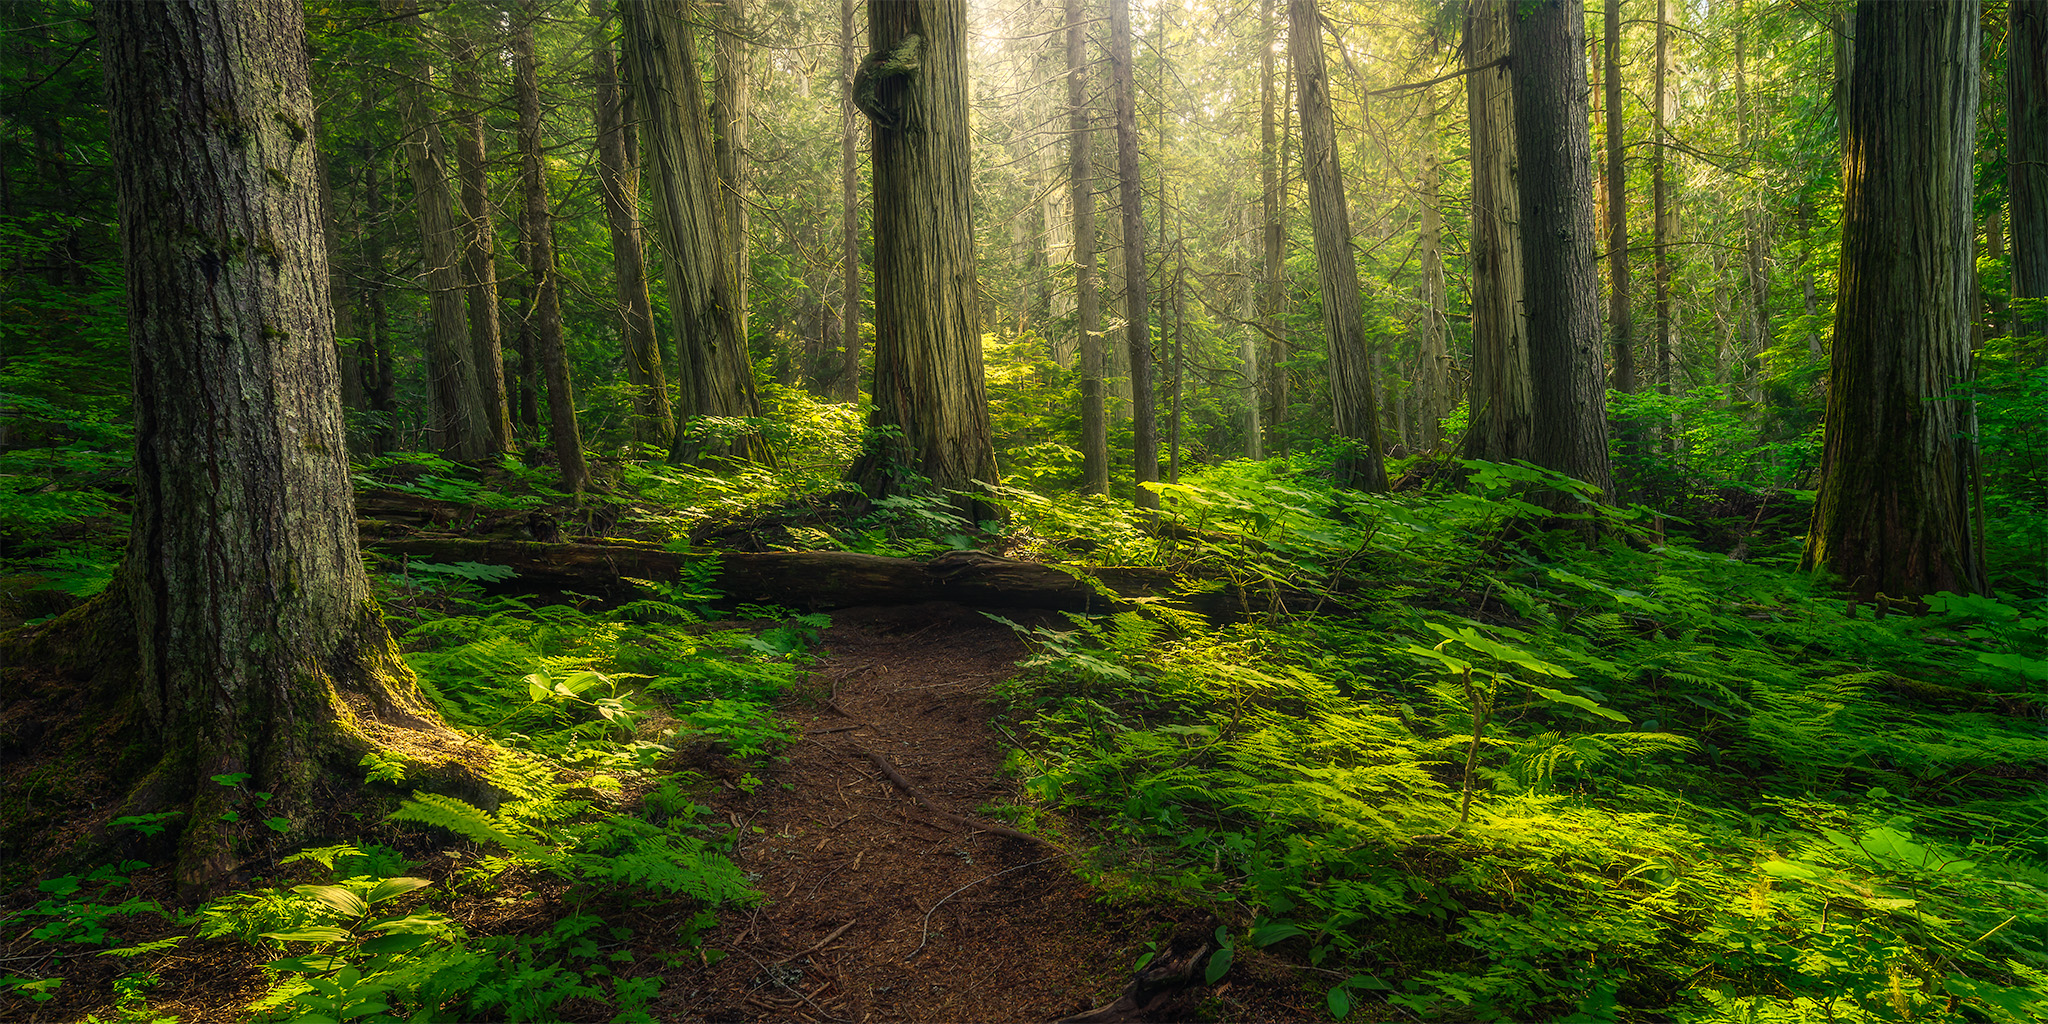 A nature photograph of an old growth forest in British Columbia